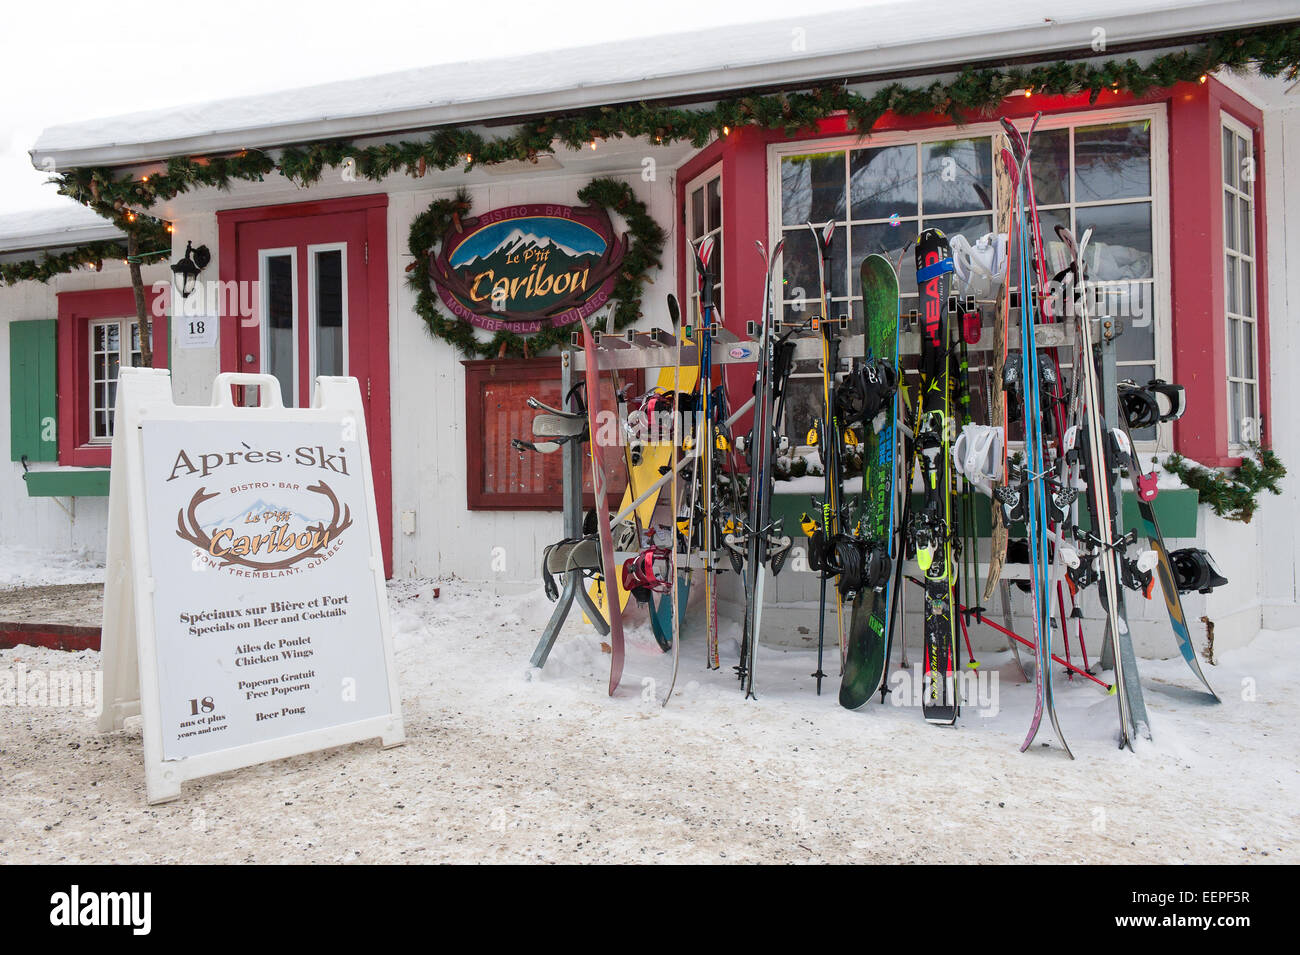 Exterior of a bar in Mont Tremblant village, at the foot of the ski slopes. - Stock Image